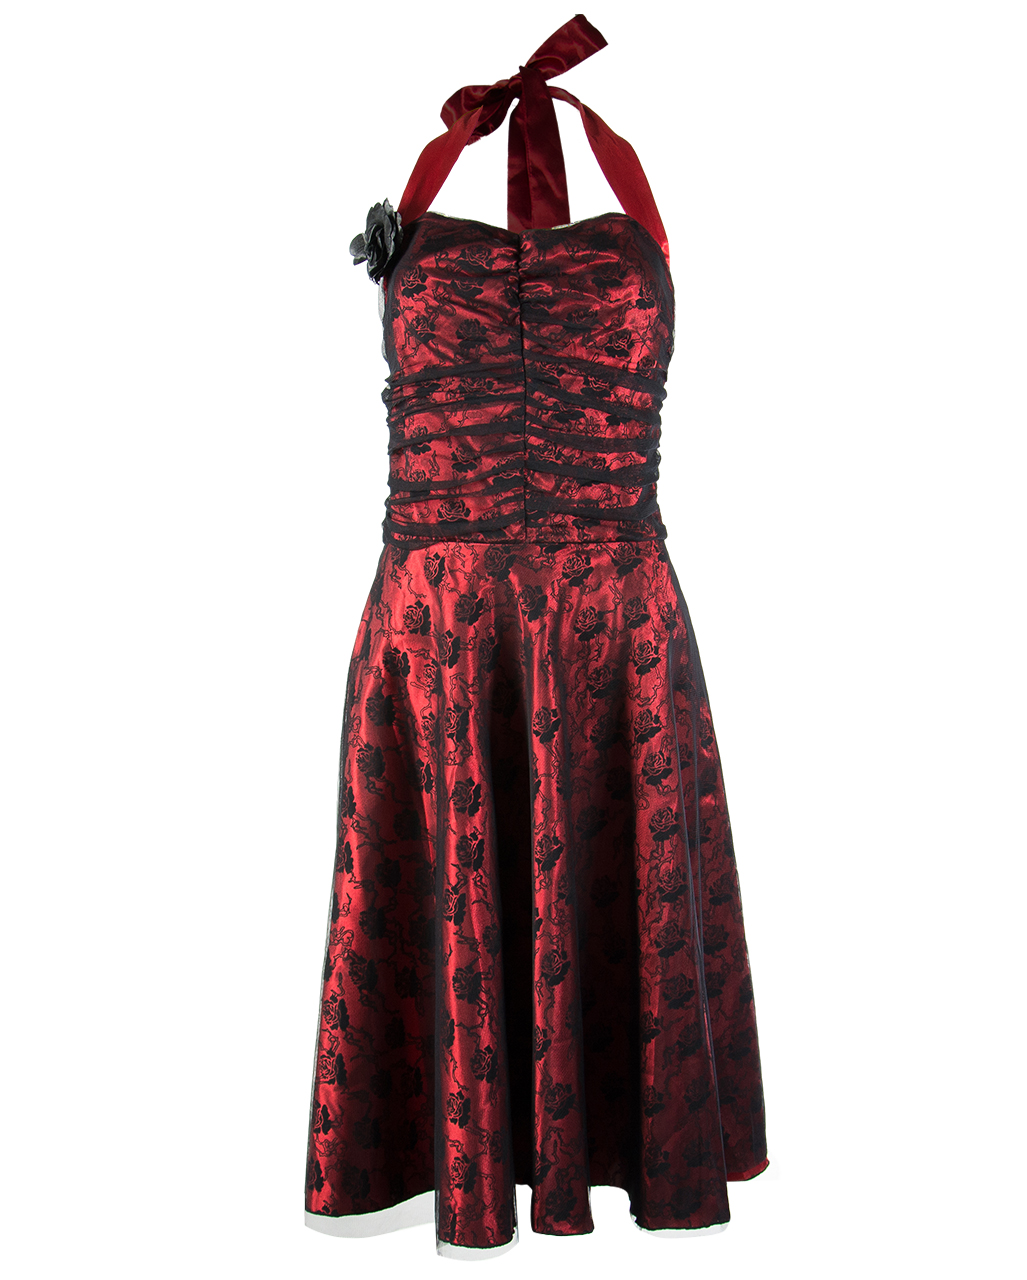 Red and Black Gothic Dresses